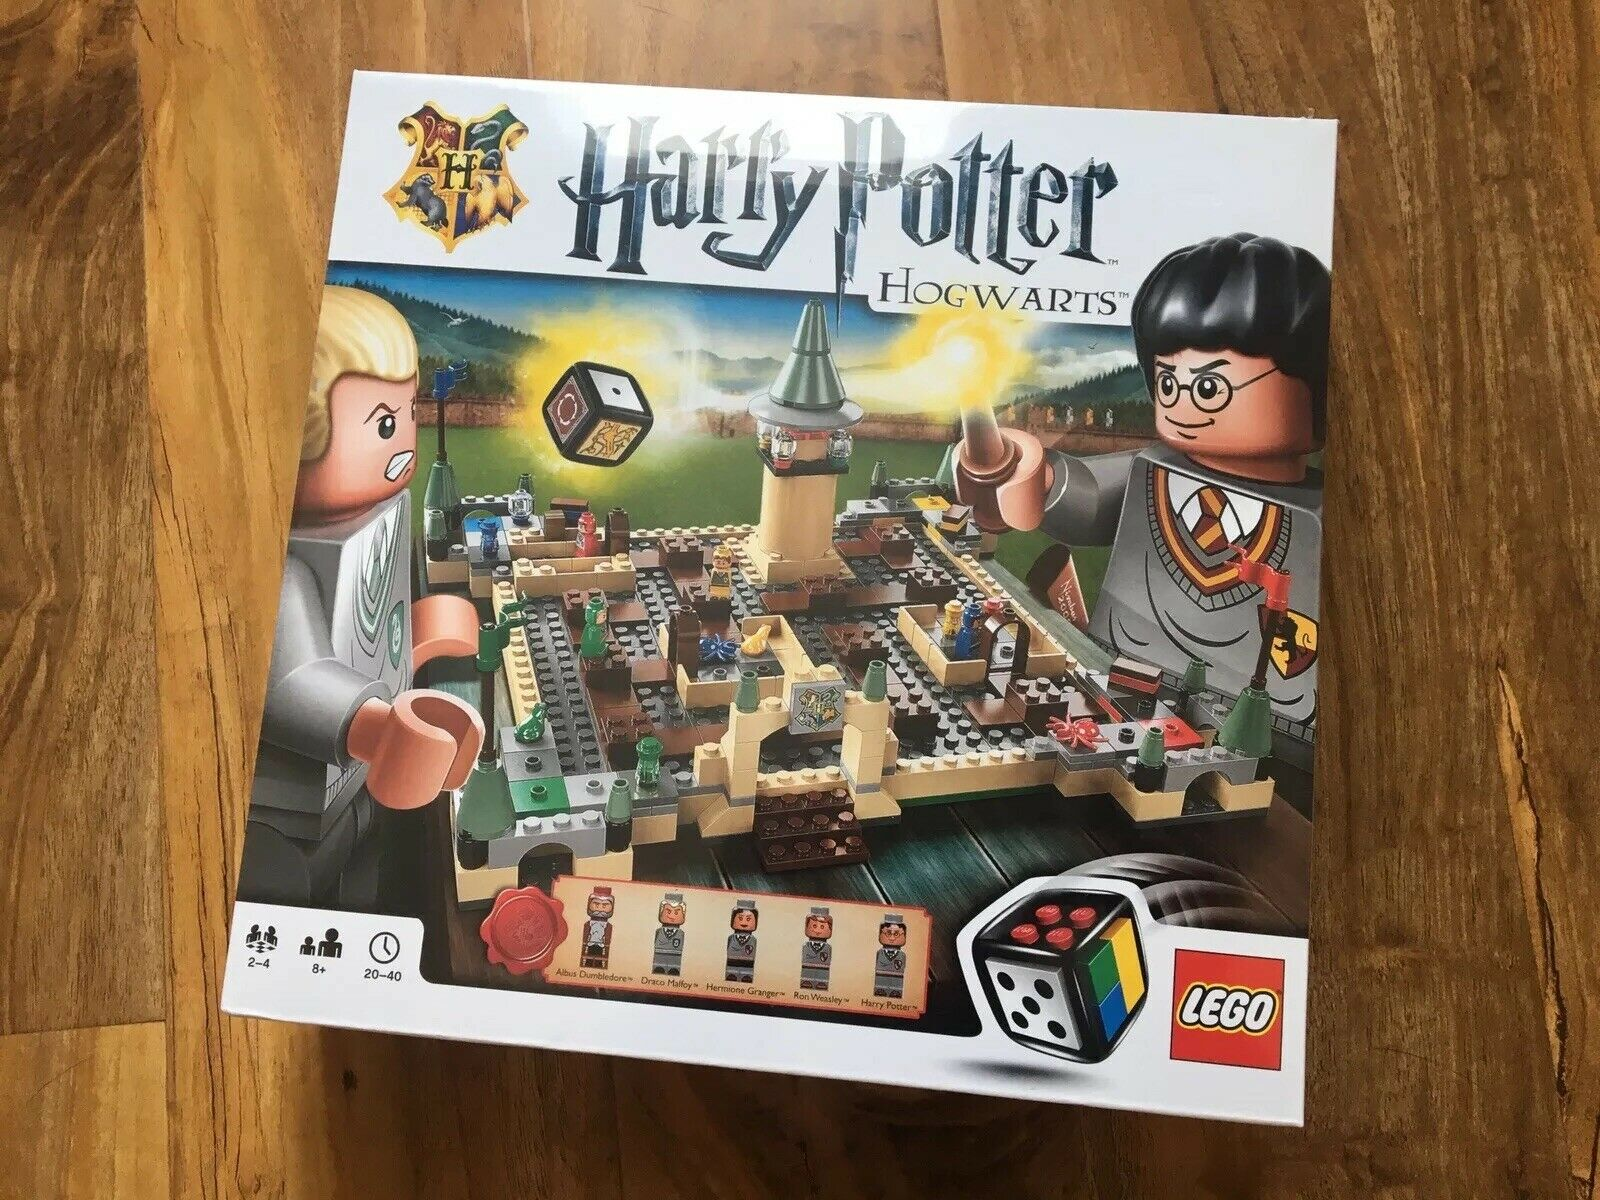 LEGO Harry Potter Hogwarts Board Game 3862 - - - New & Sealed 67ef9a